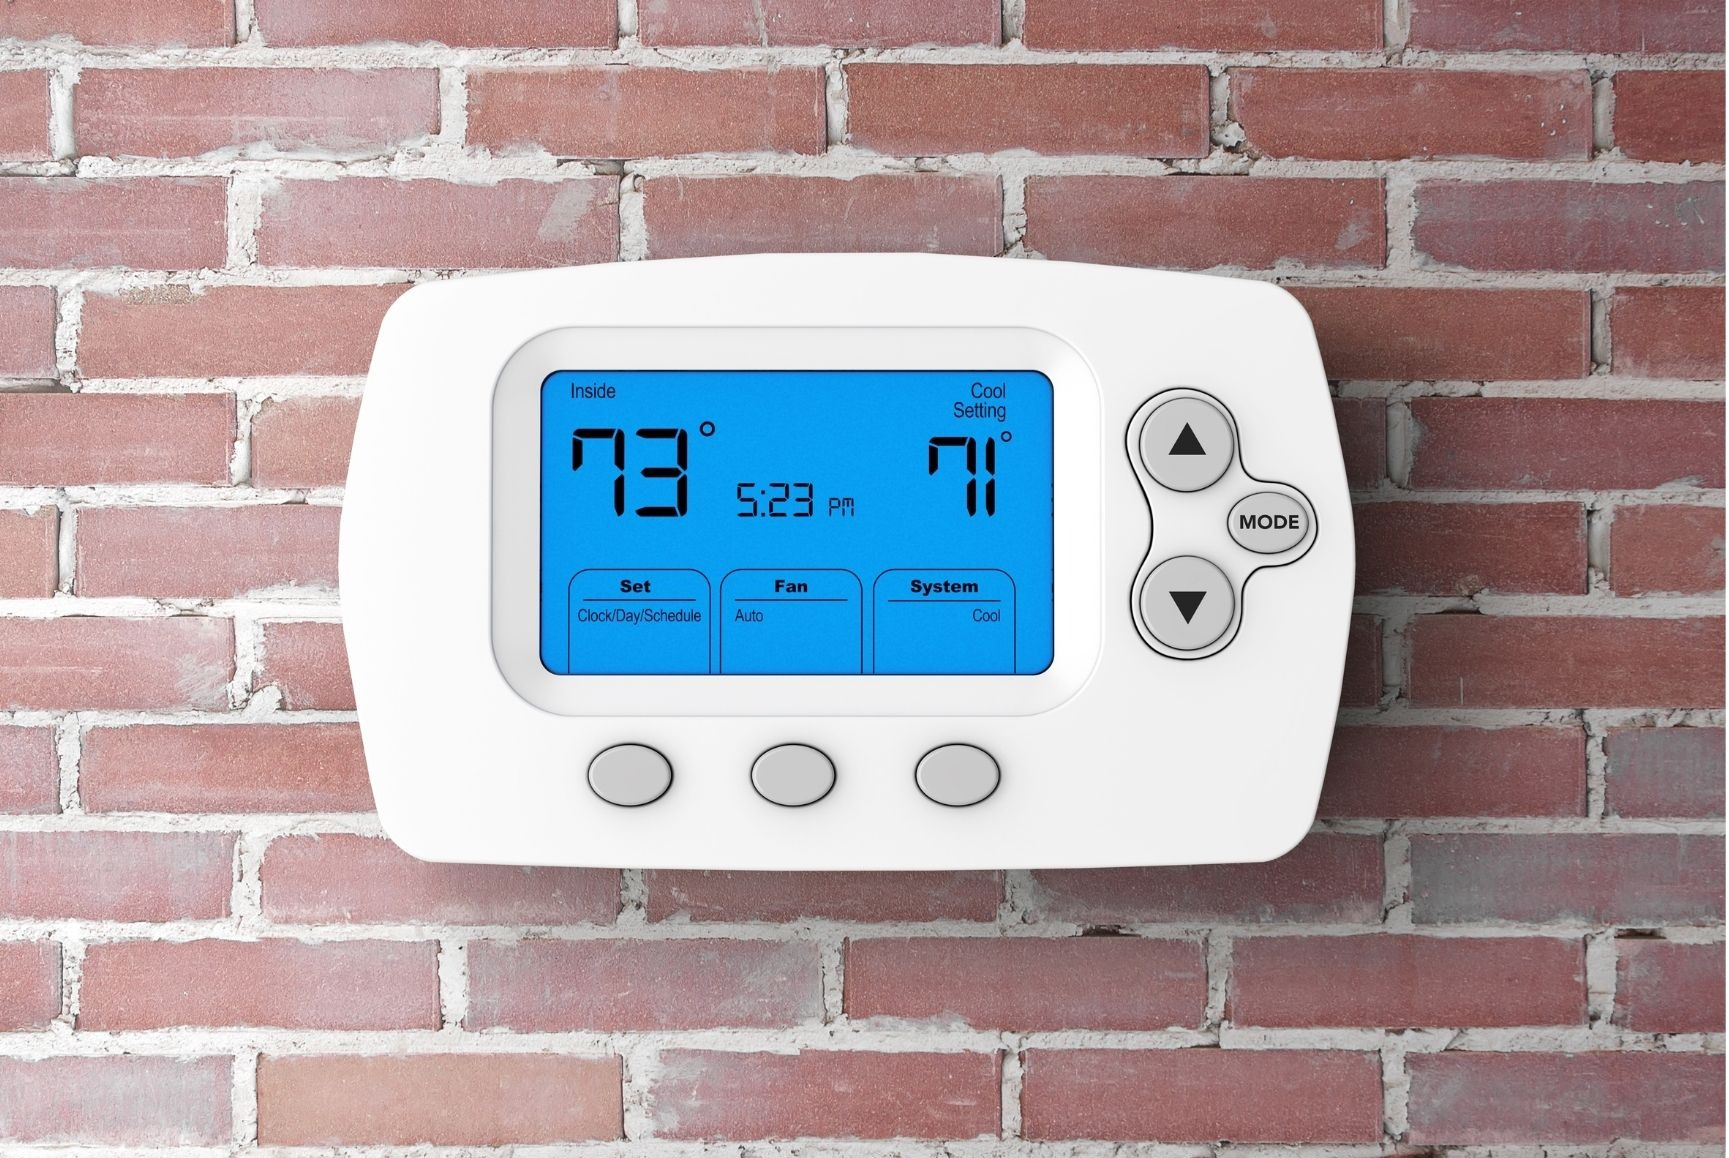 Honeywell Touchscreen Thermostat Reset Instructions